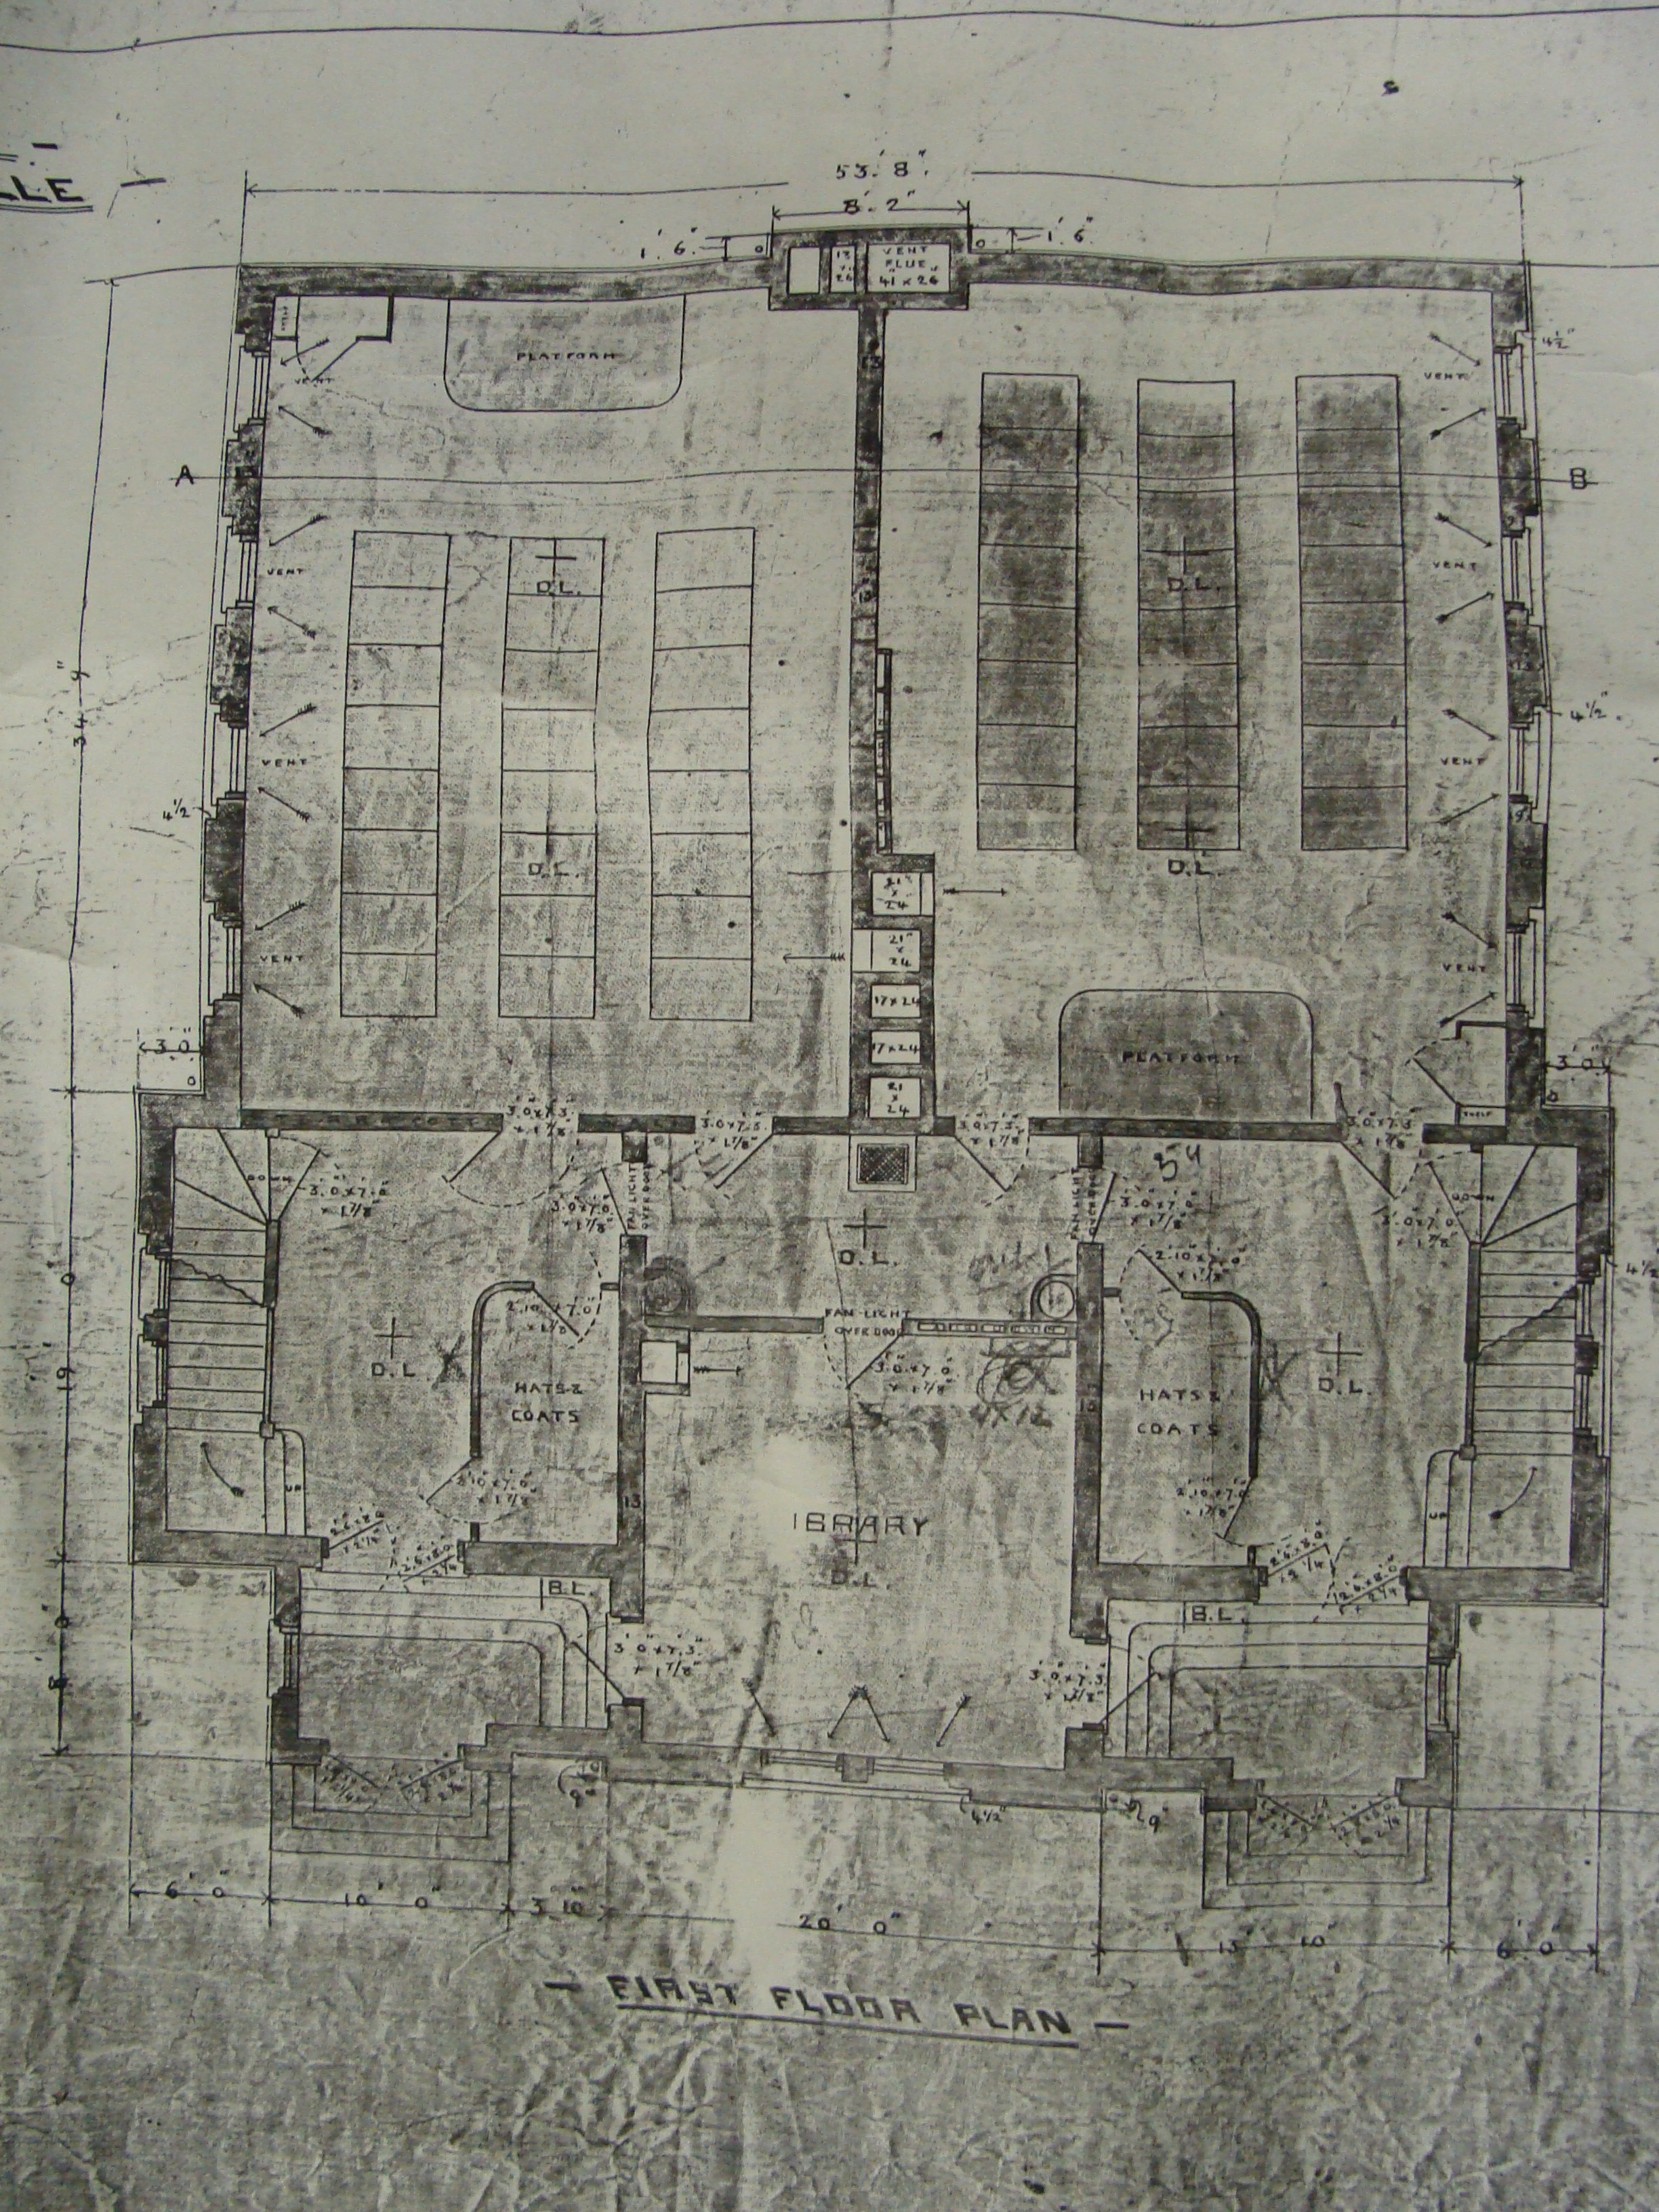 File Floor Plan Of The First Floor Of The Deseronto High School Showing Two Classrooms And The Library 3292304221 Jpg Wikimedia Commons